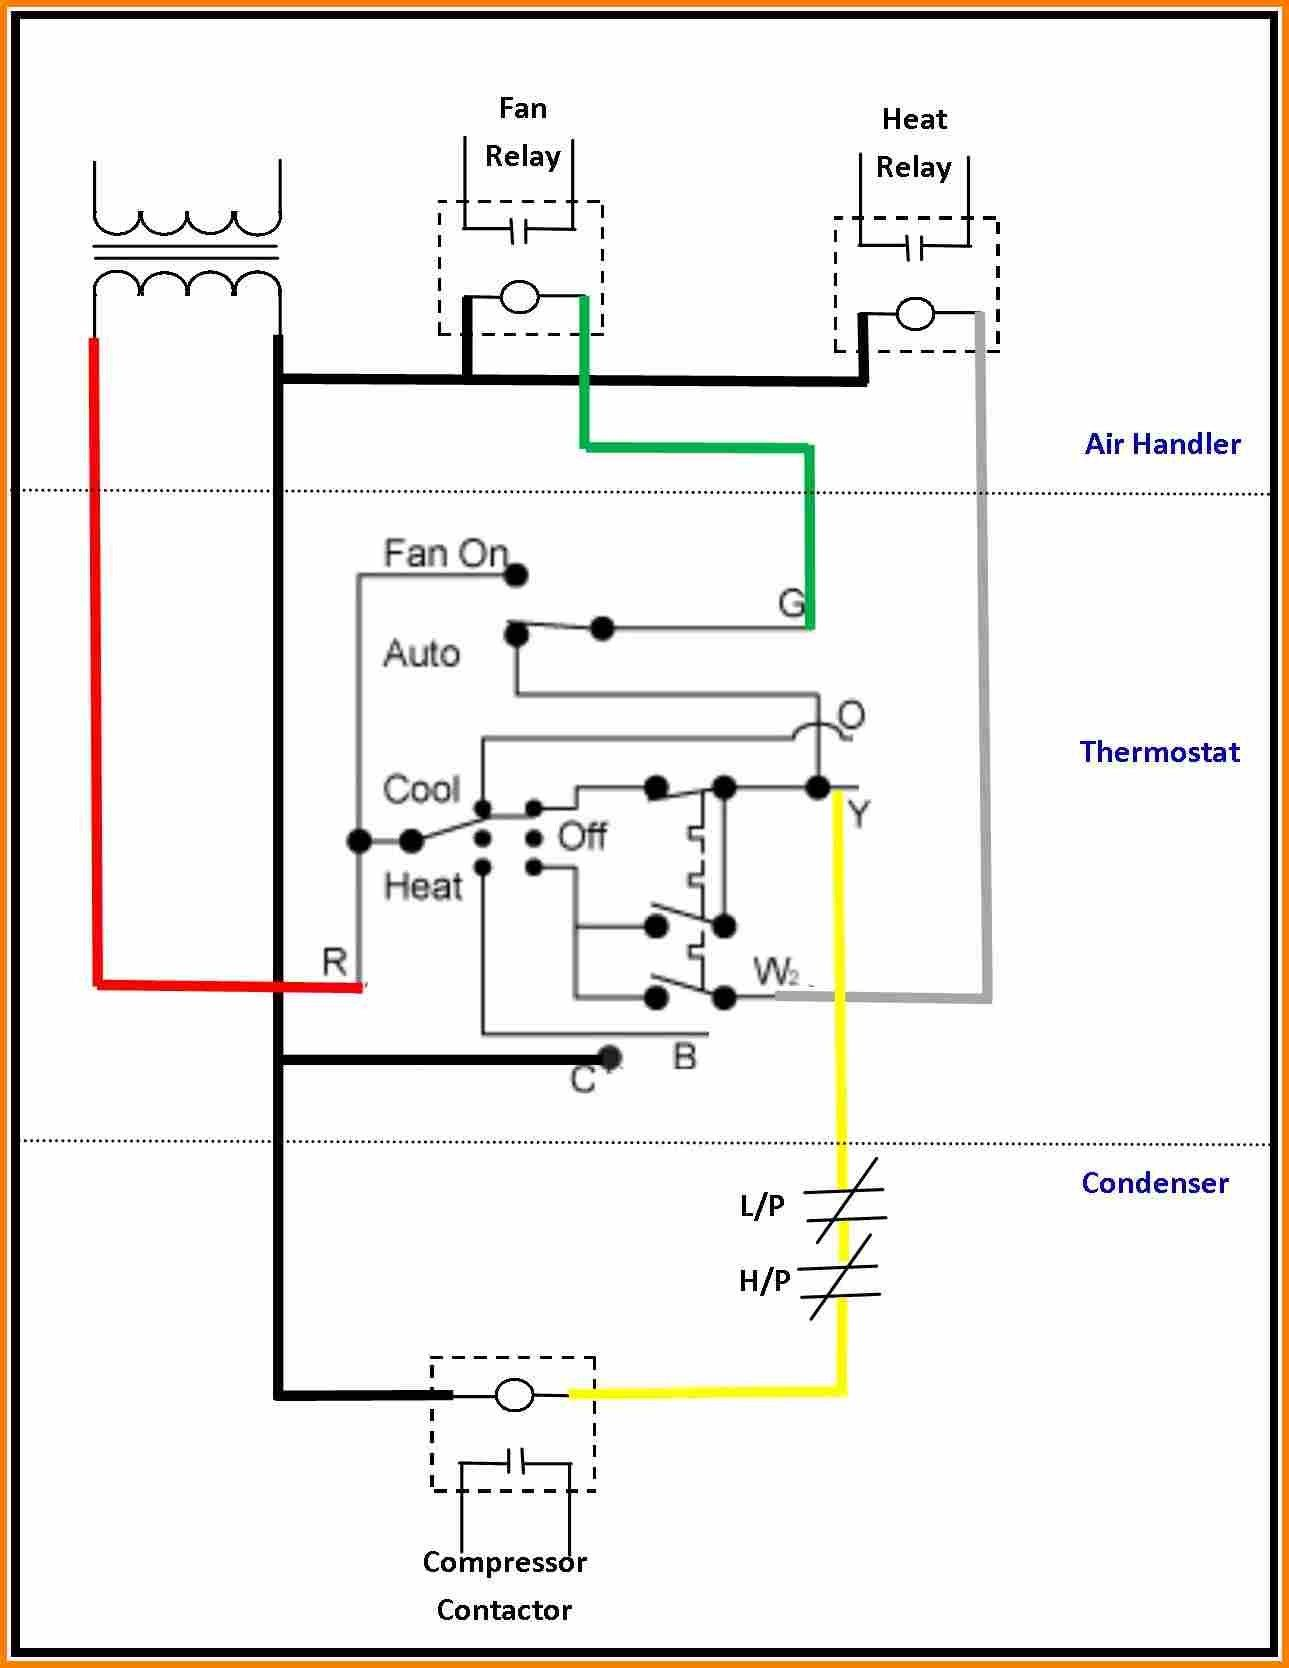 ac thermostat wire diagram wiring a ac thermostat diagram refrigeracion y aire  wiring a ac thermostat diagram